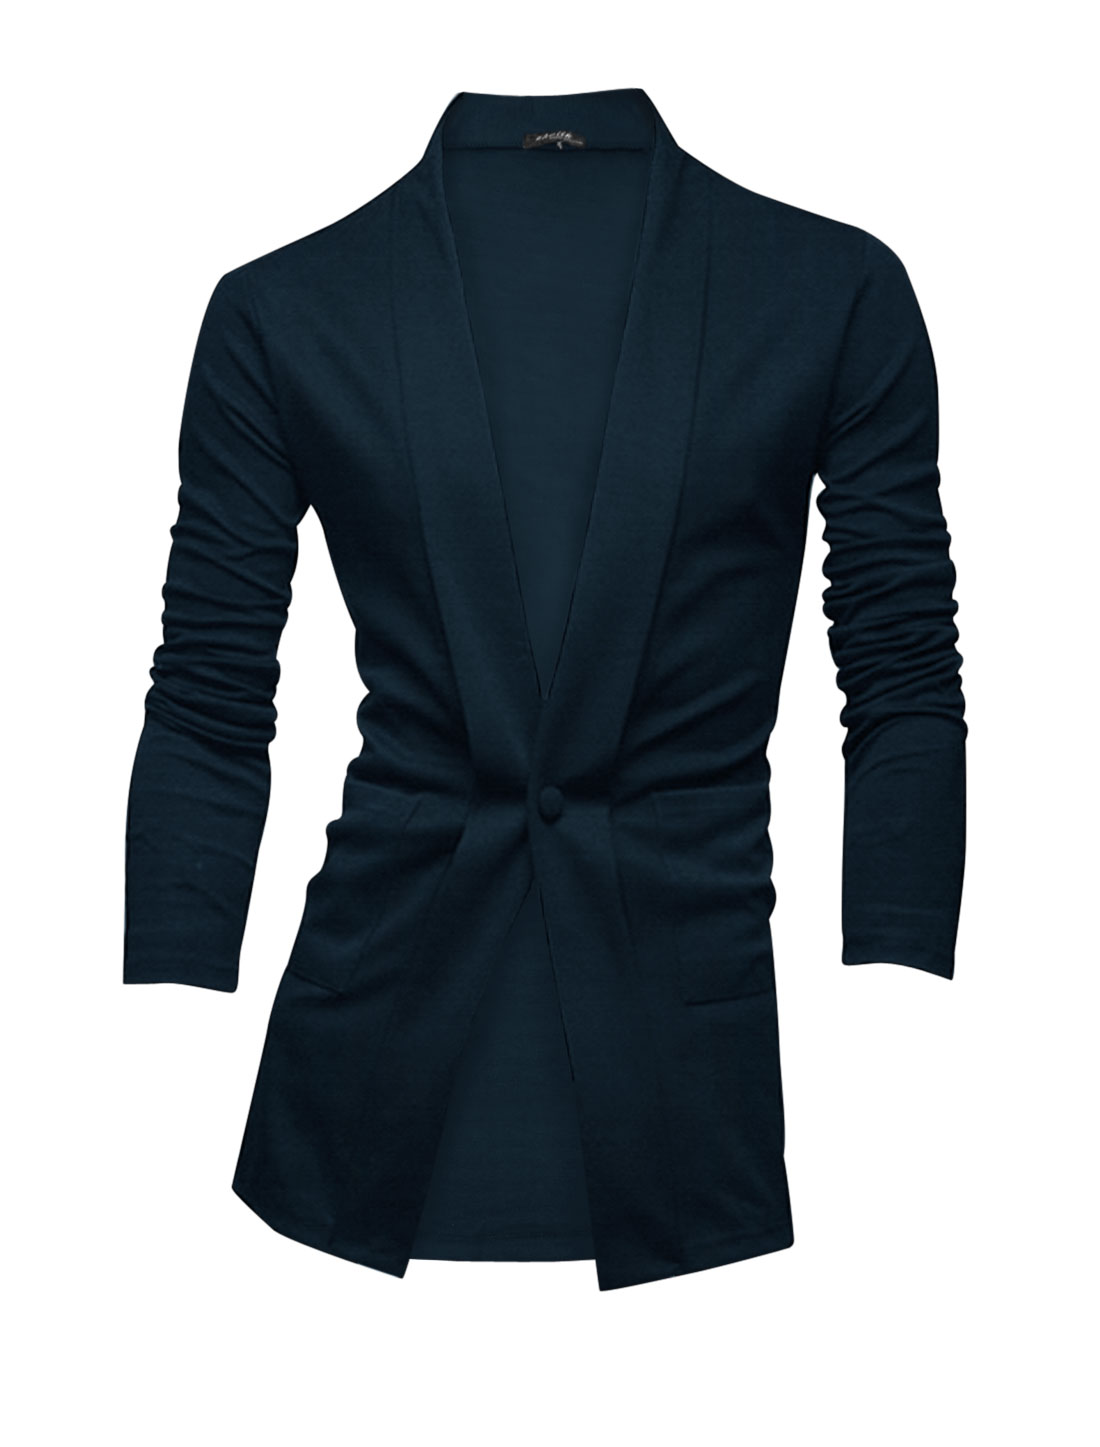 Men Long Sleeves Two Patch Pockets Front Fashion Casual Blazer Navy Blue M